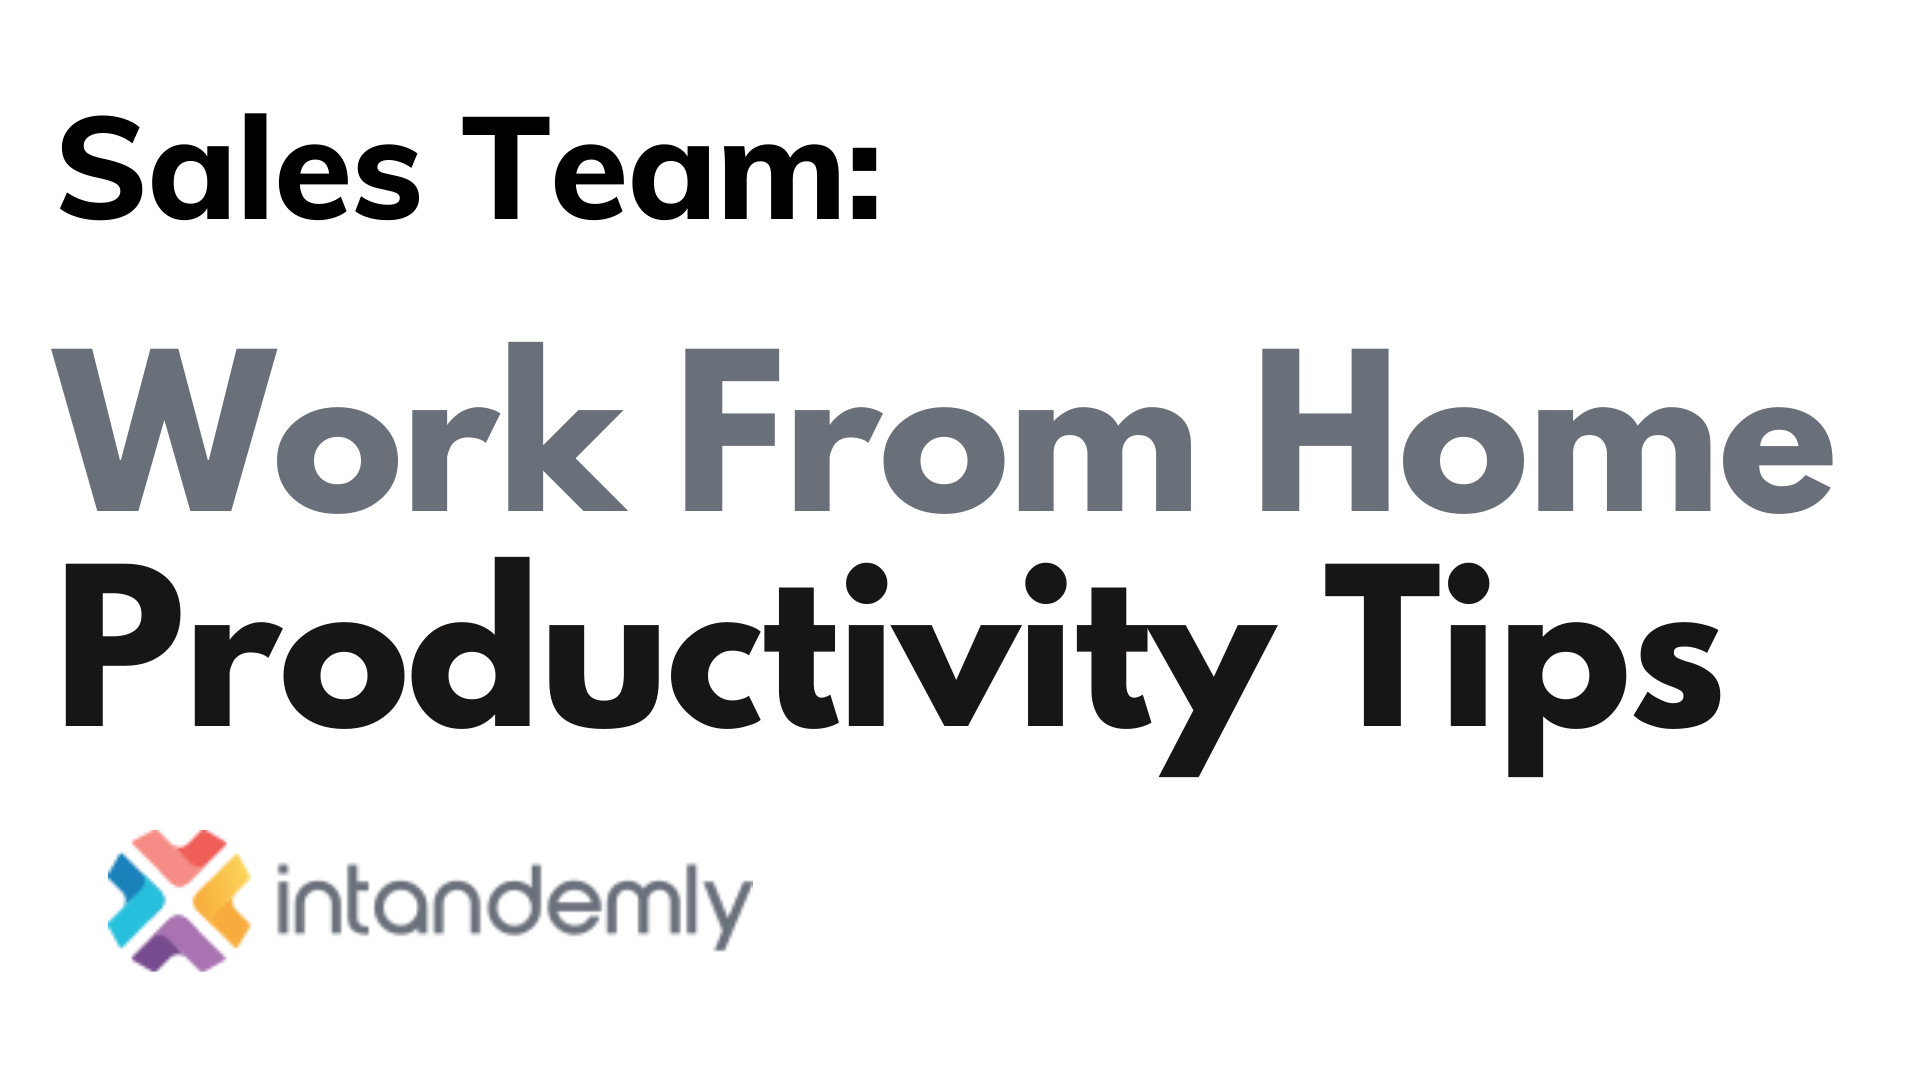 Work from Home Sales Team Productivity Tips